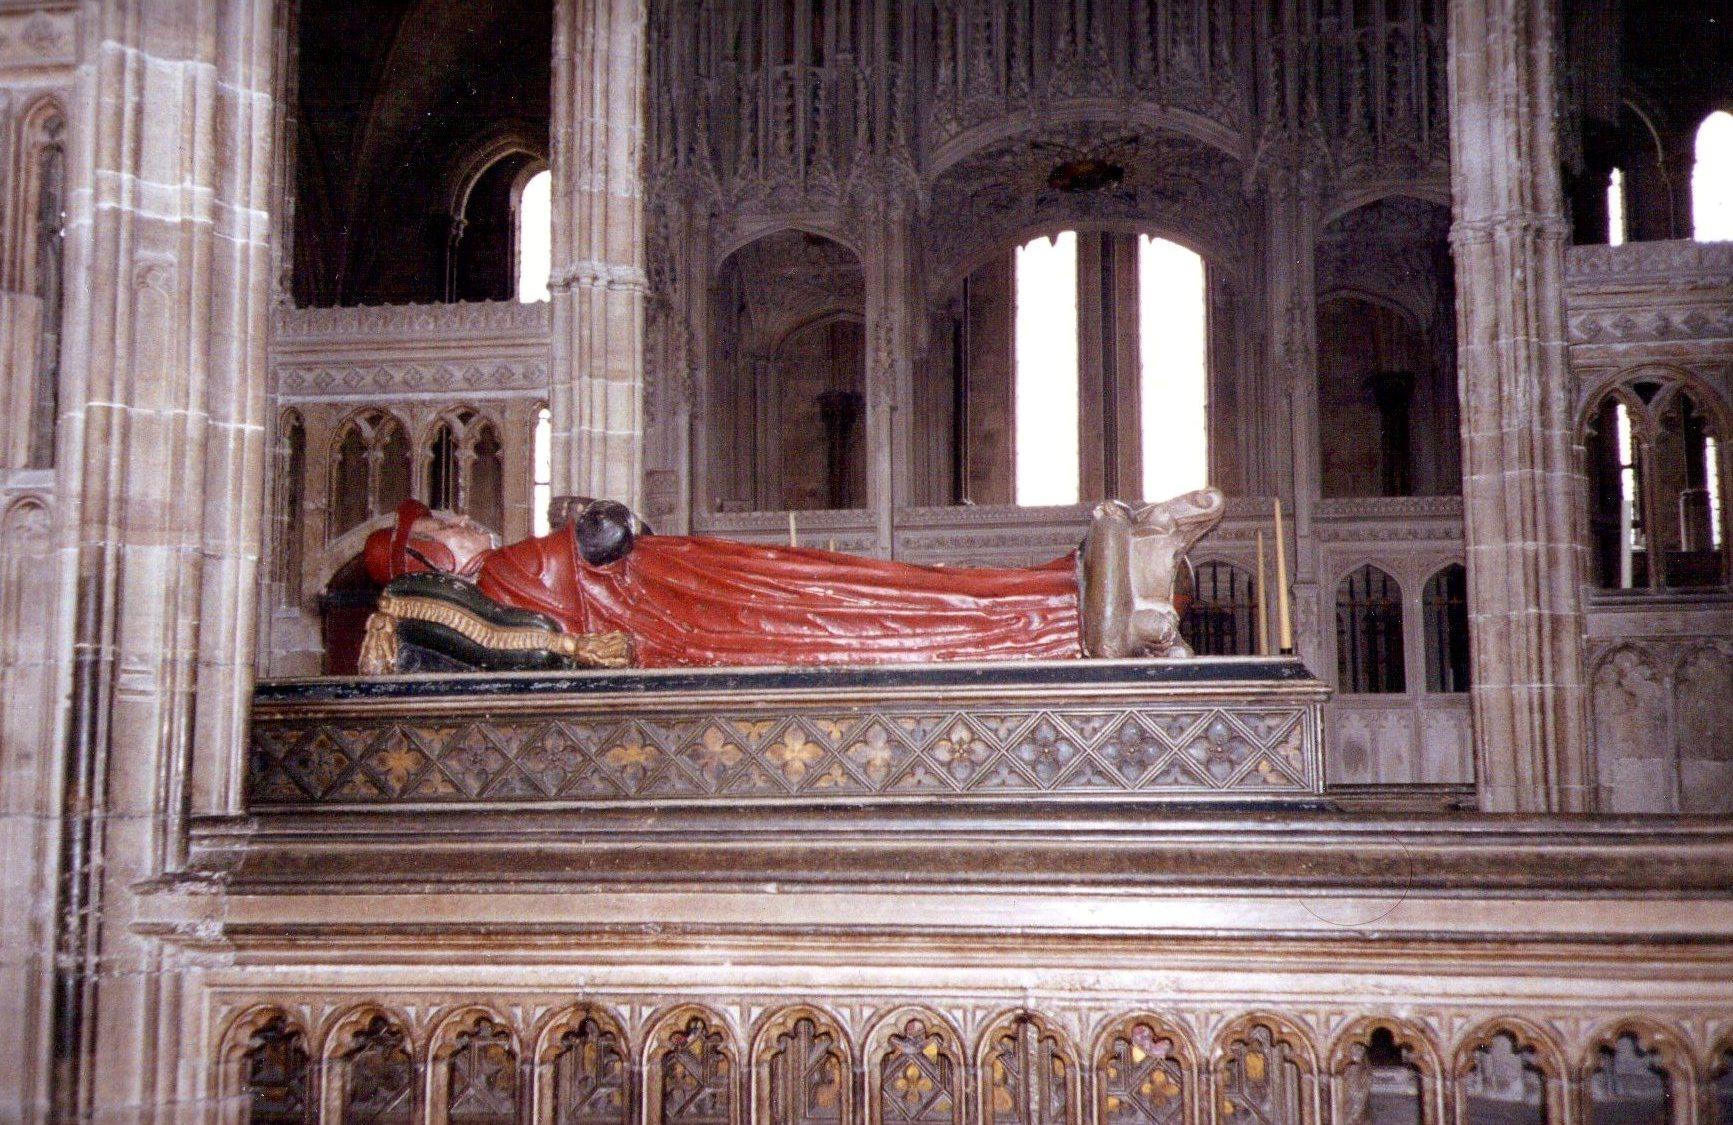 http://upload.wikimedia.org/wikipedia/commons/0/07/Tomb_of_Cardinal_Beaufort.jpg